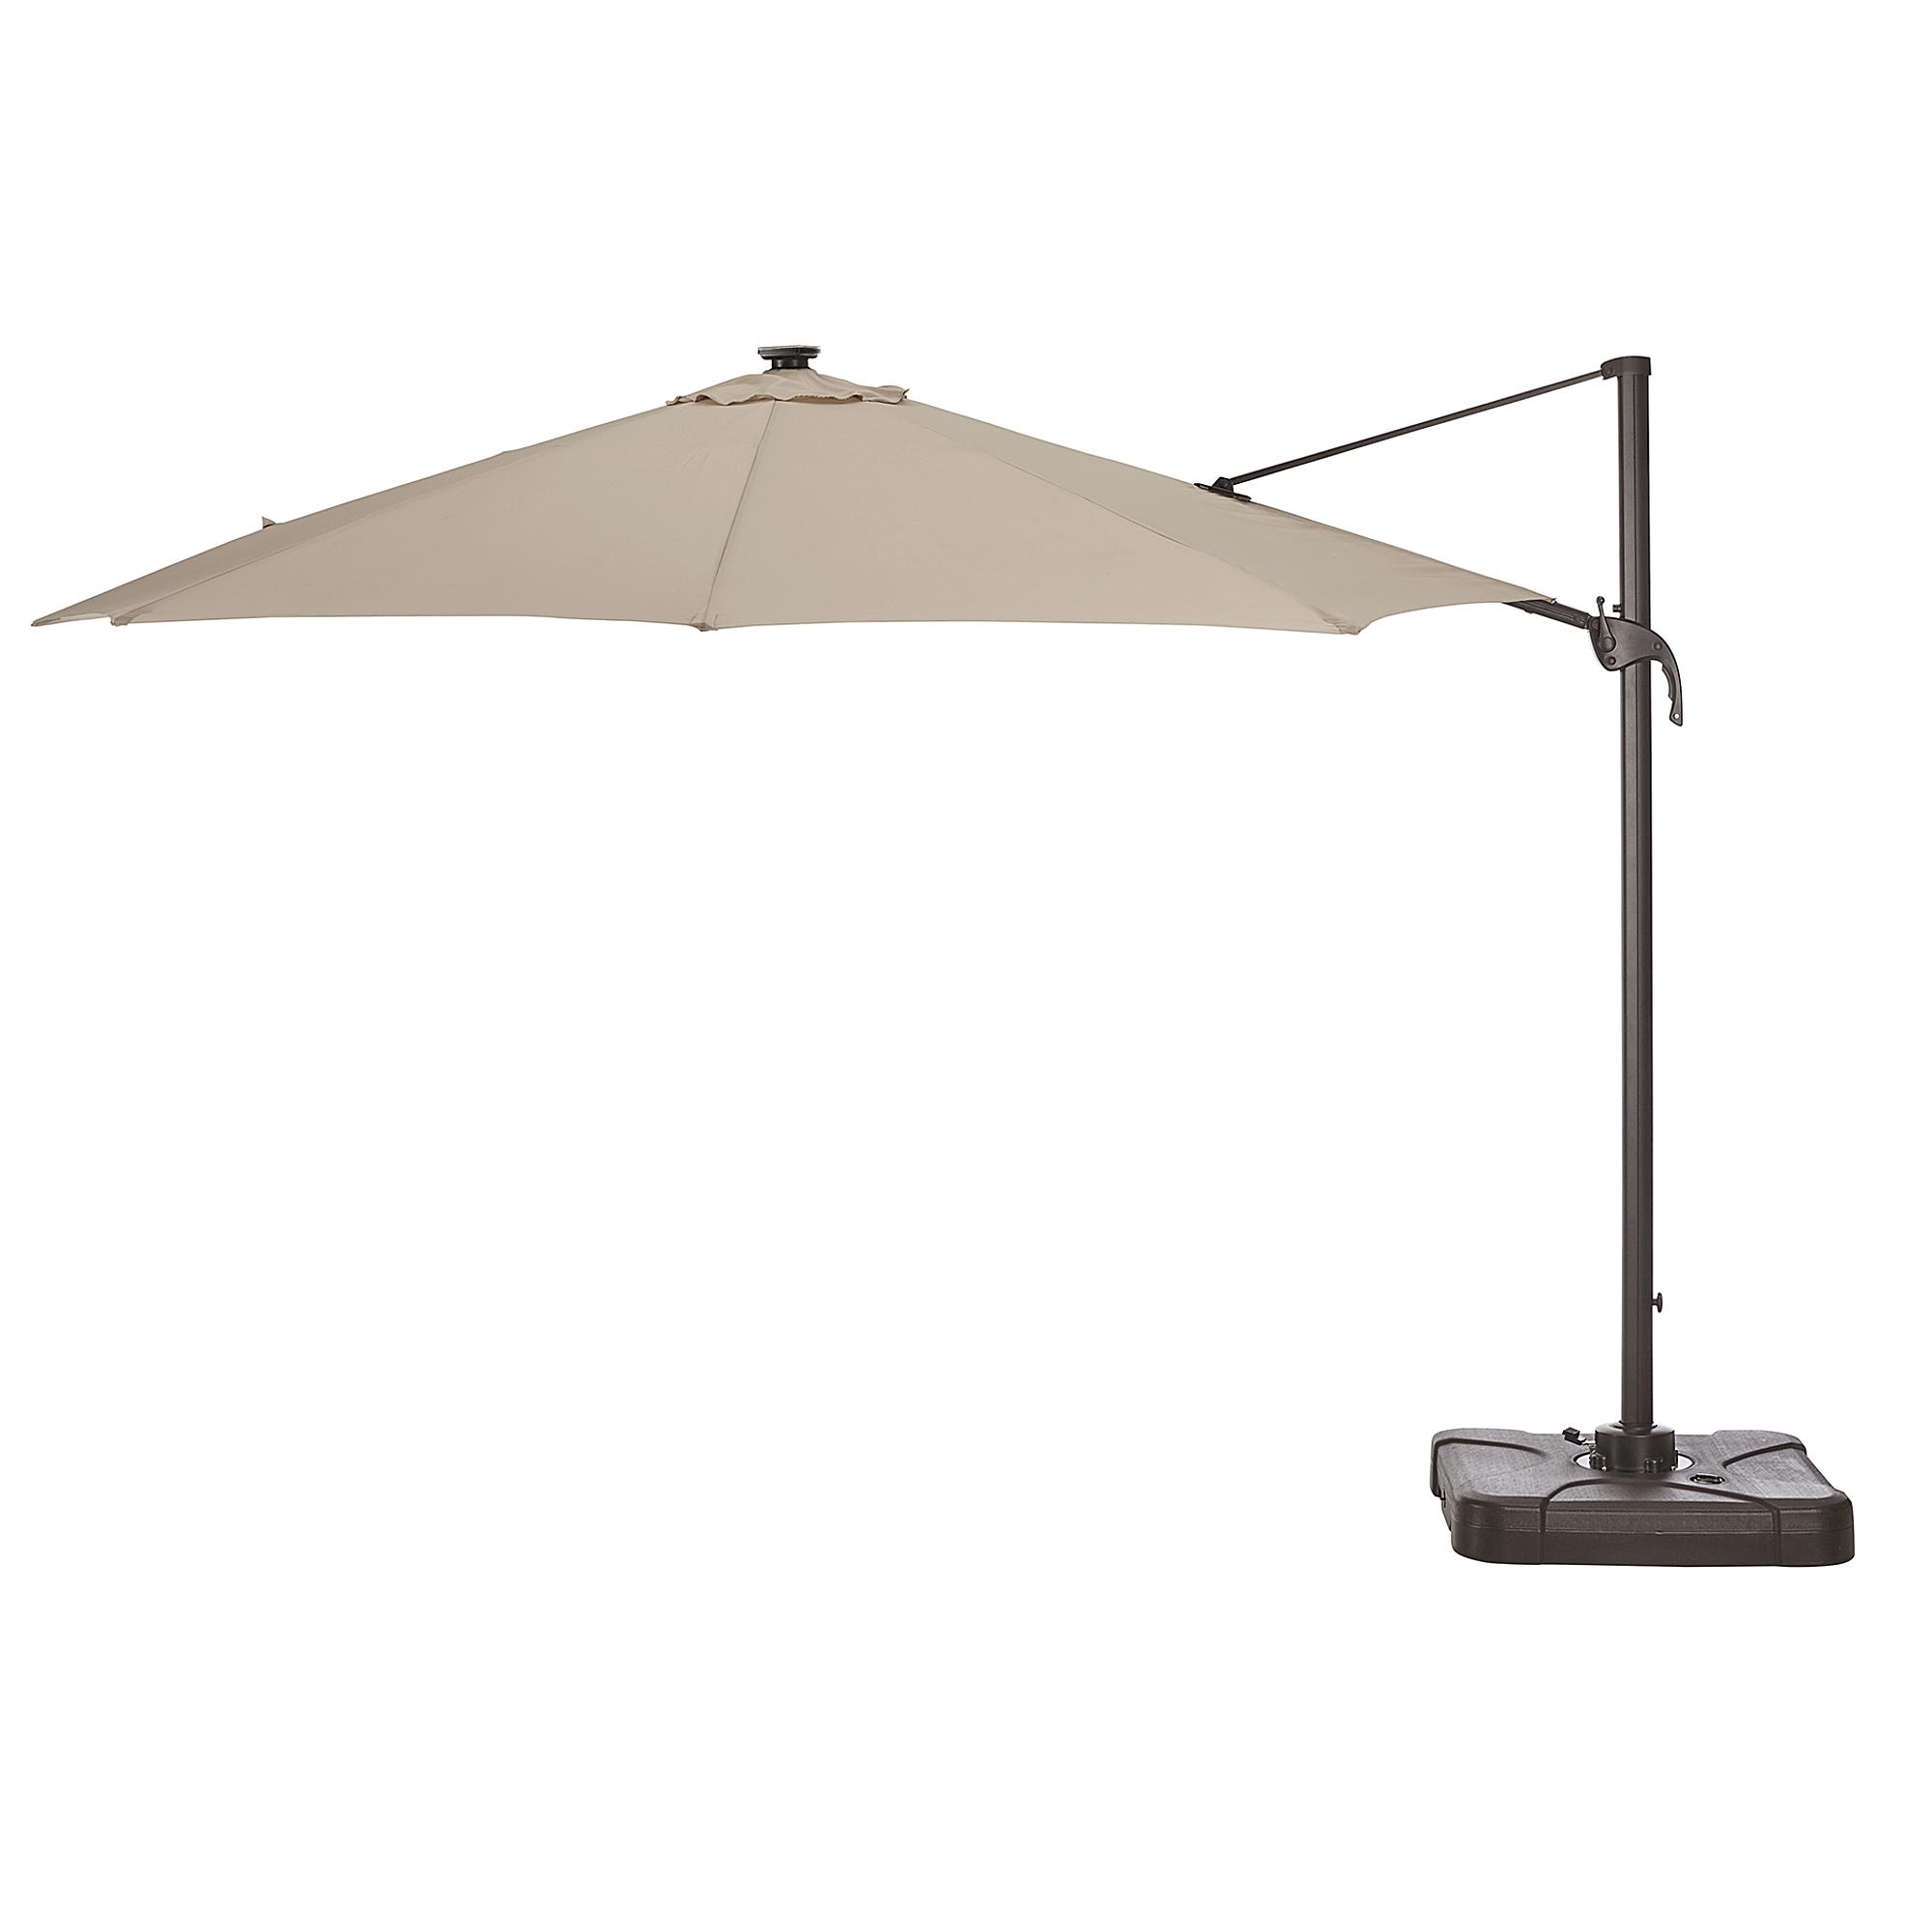 Replacement Umbrella Canopy – Garden Winds Intended For Famous Sears Patio Umbrellas (View 5 of 20)